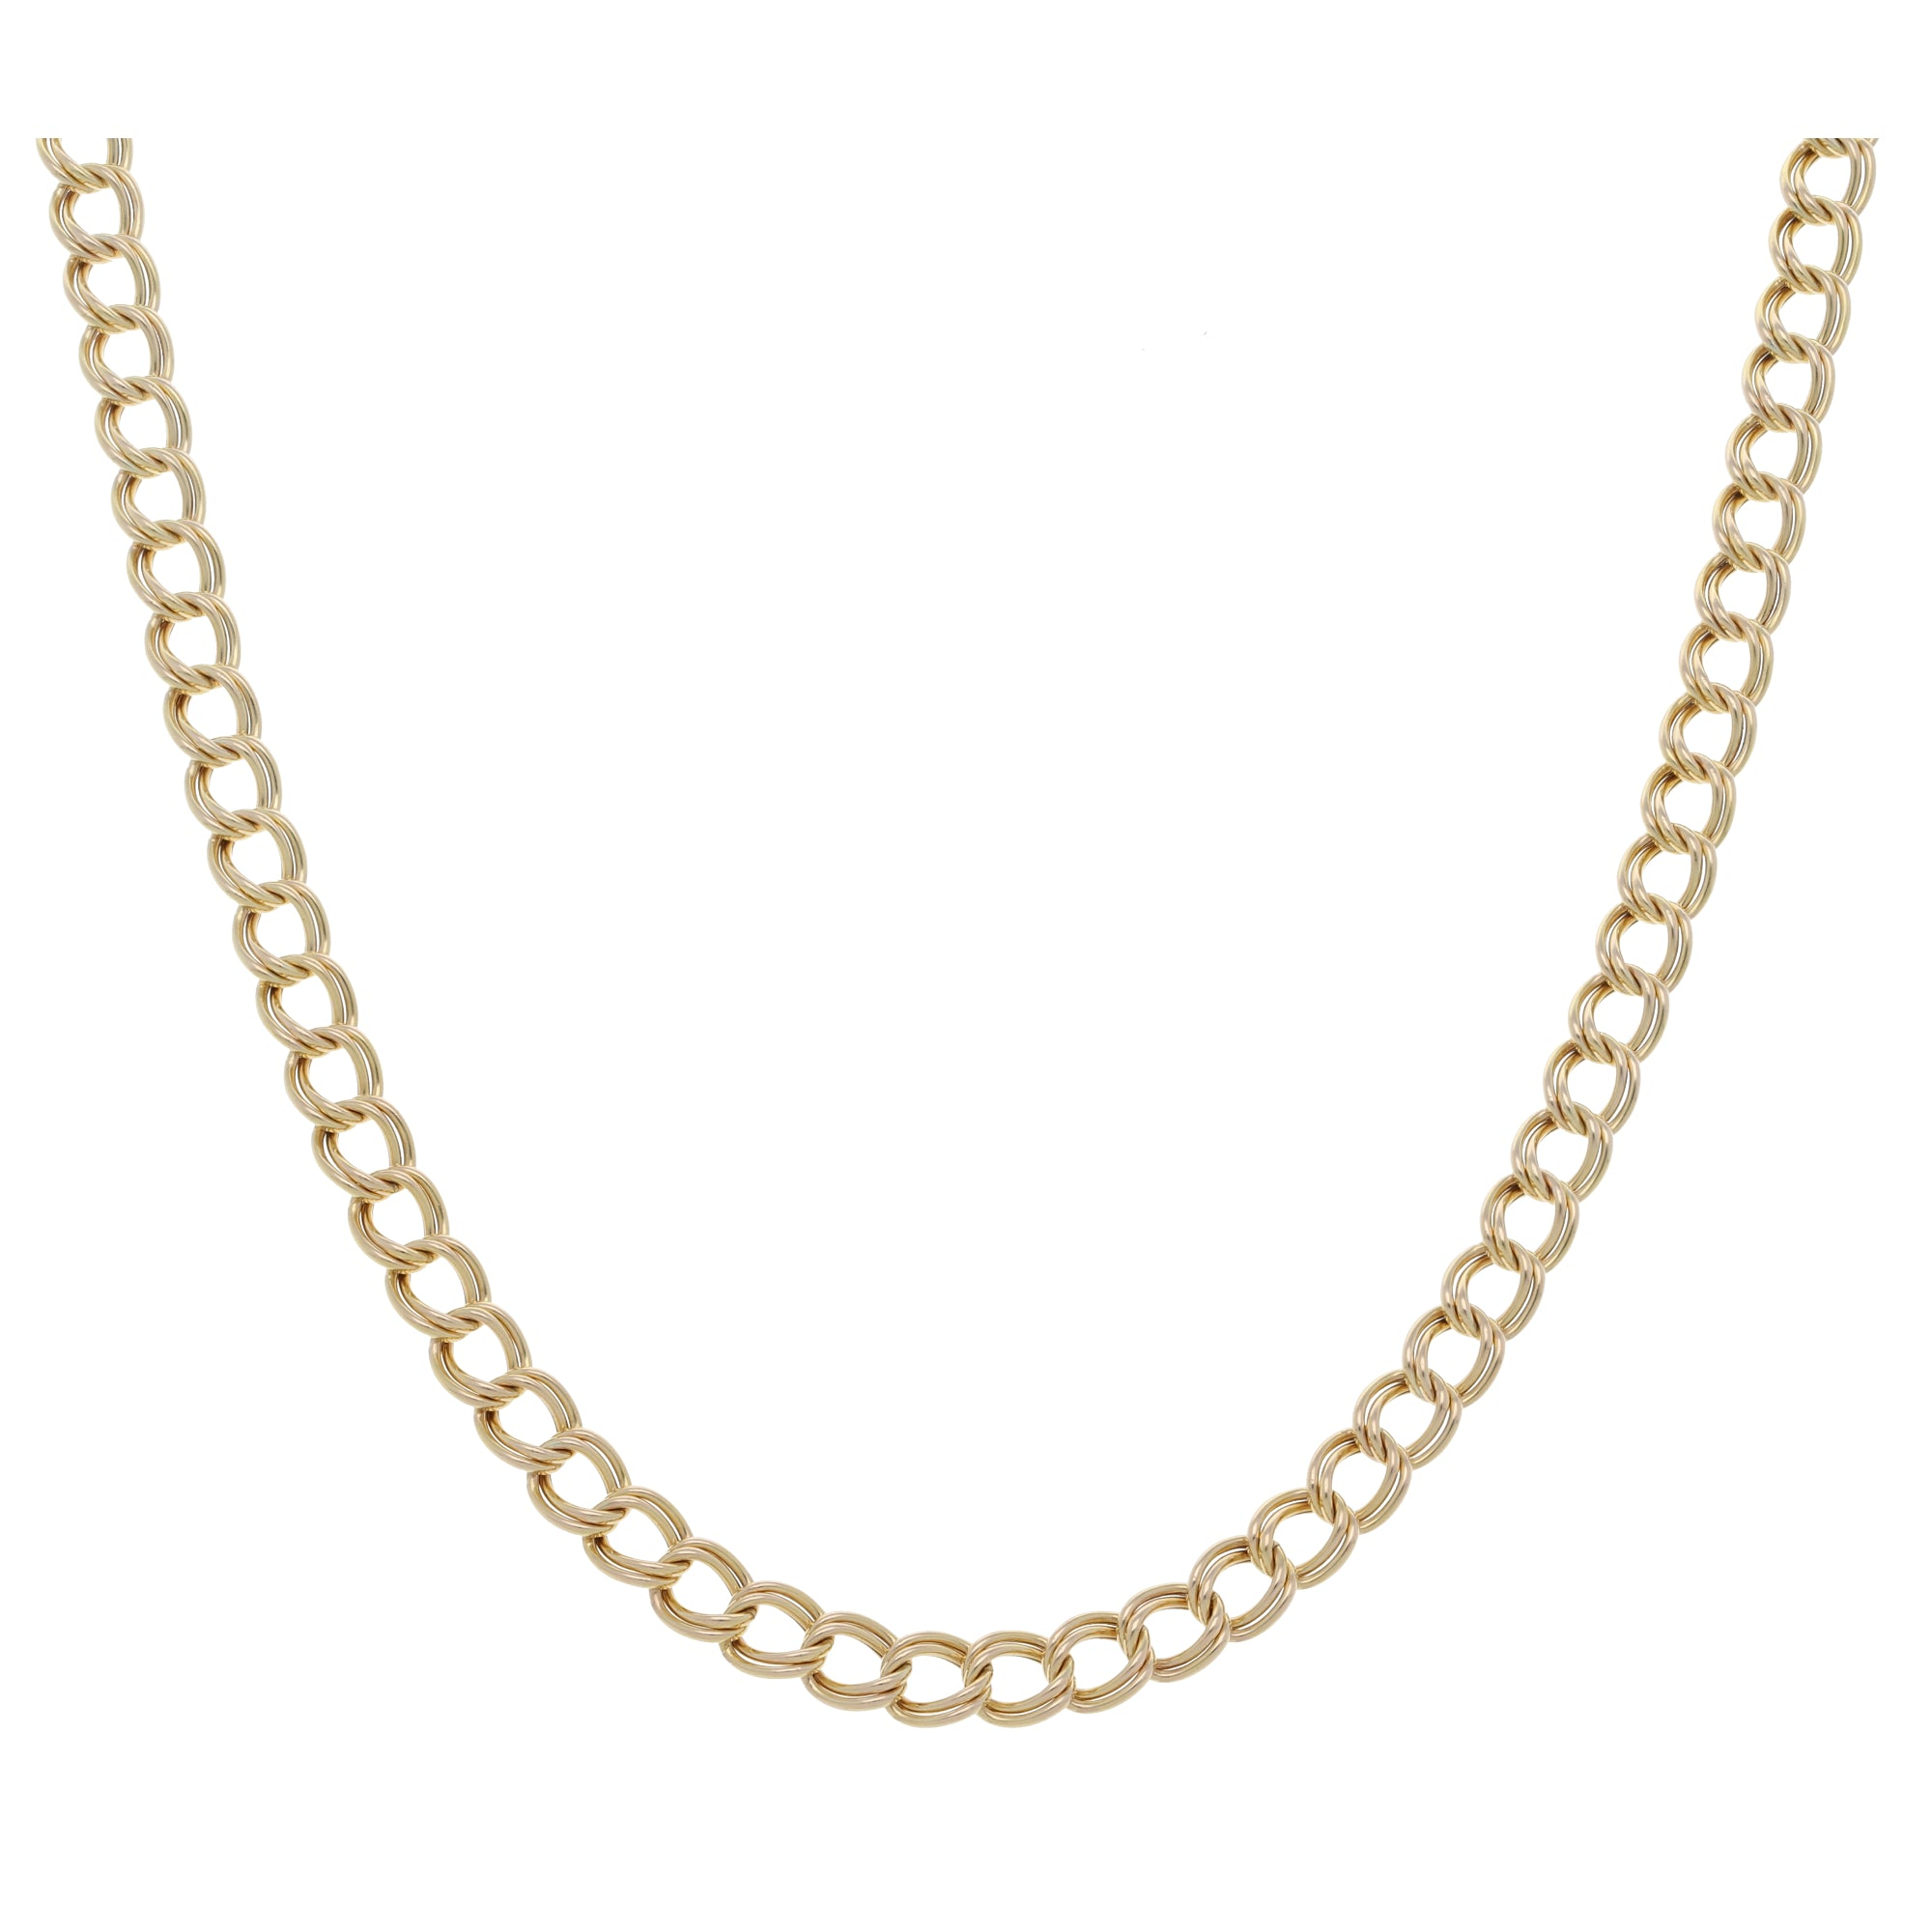 9ct Gold Ladies Double Curb Chain 18